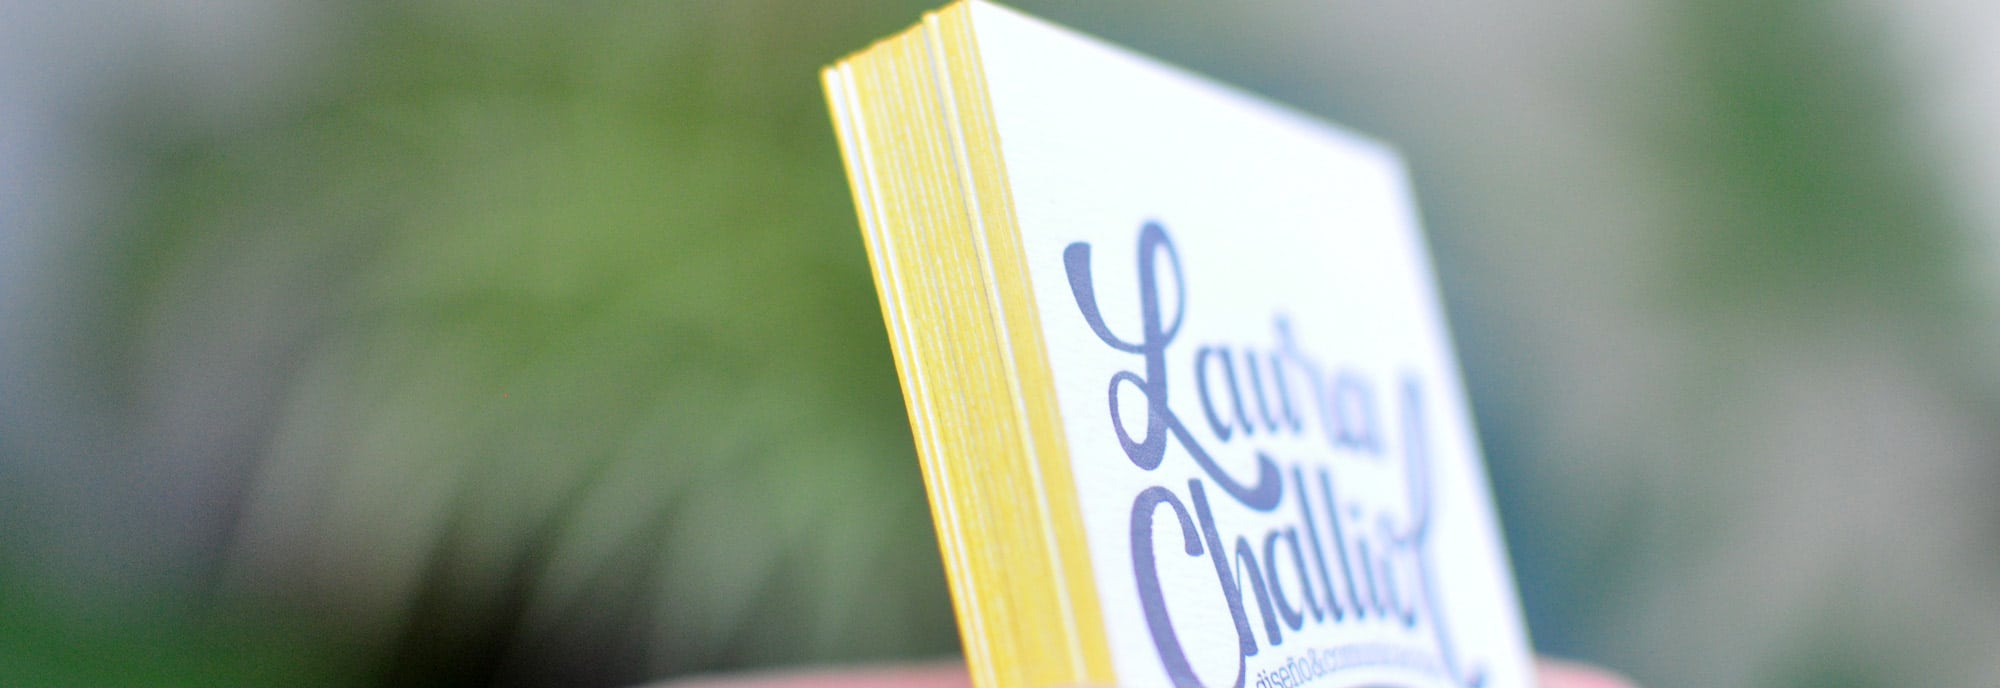 laura challiol header